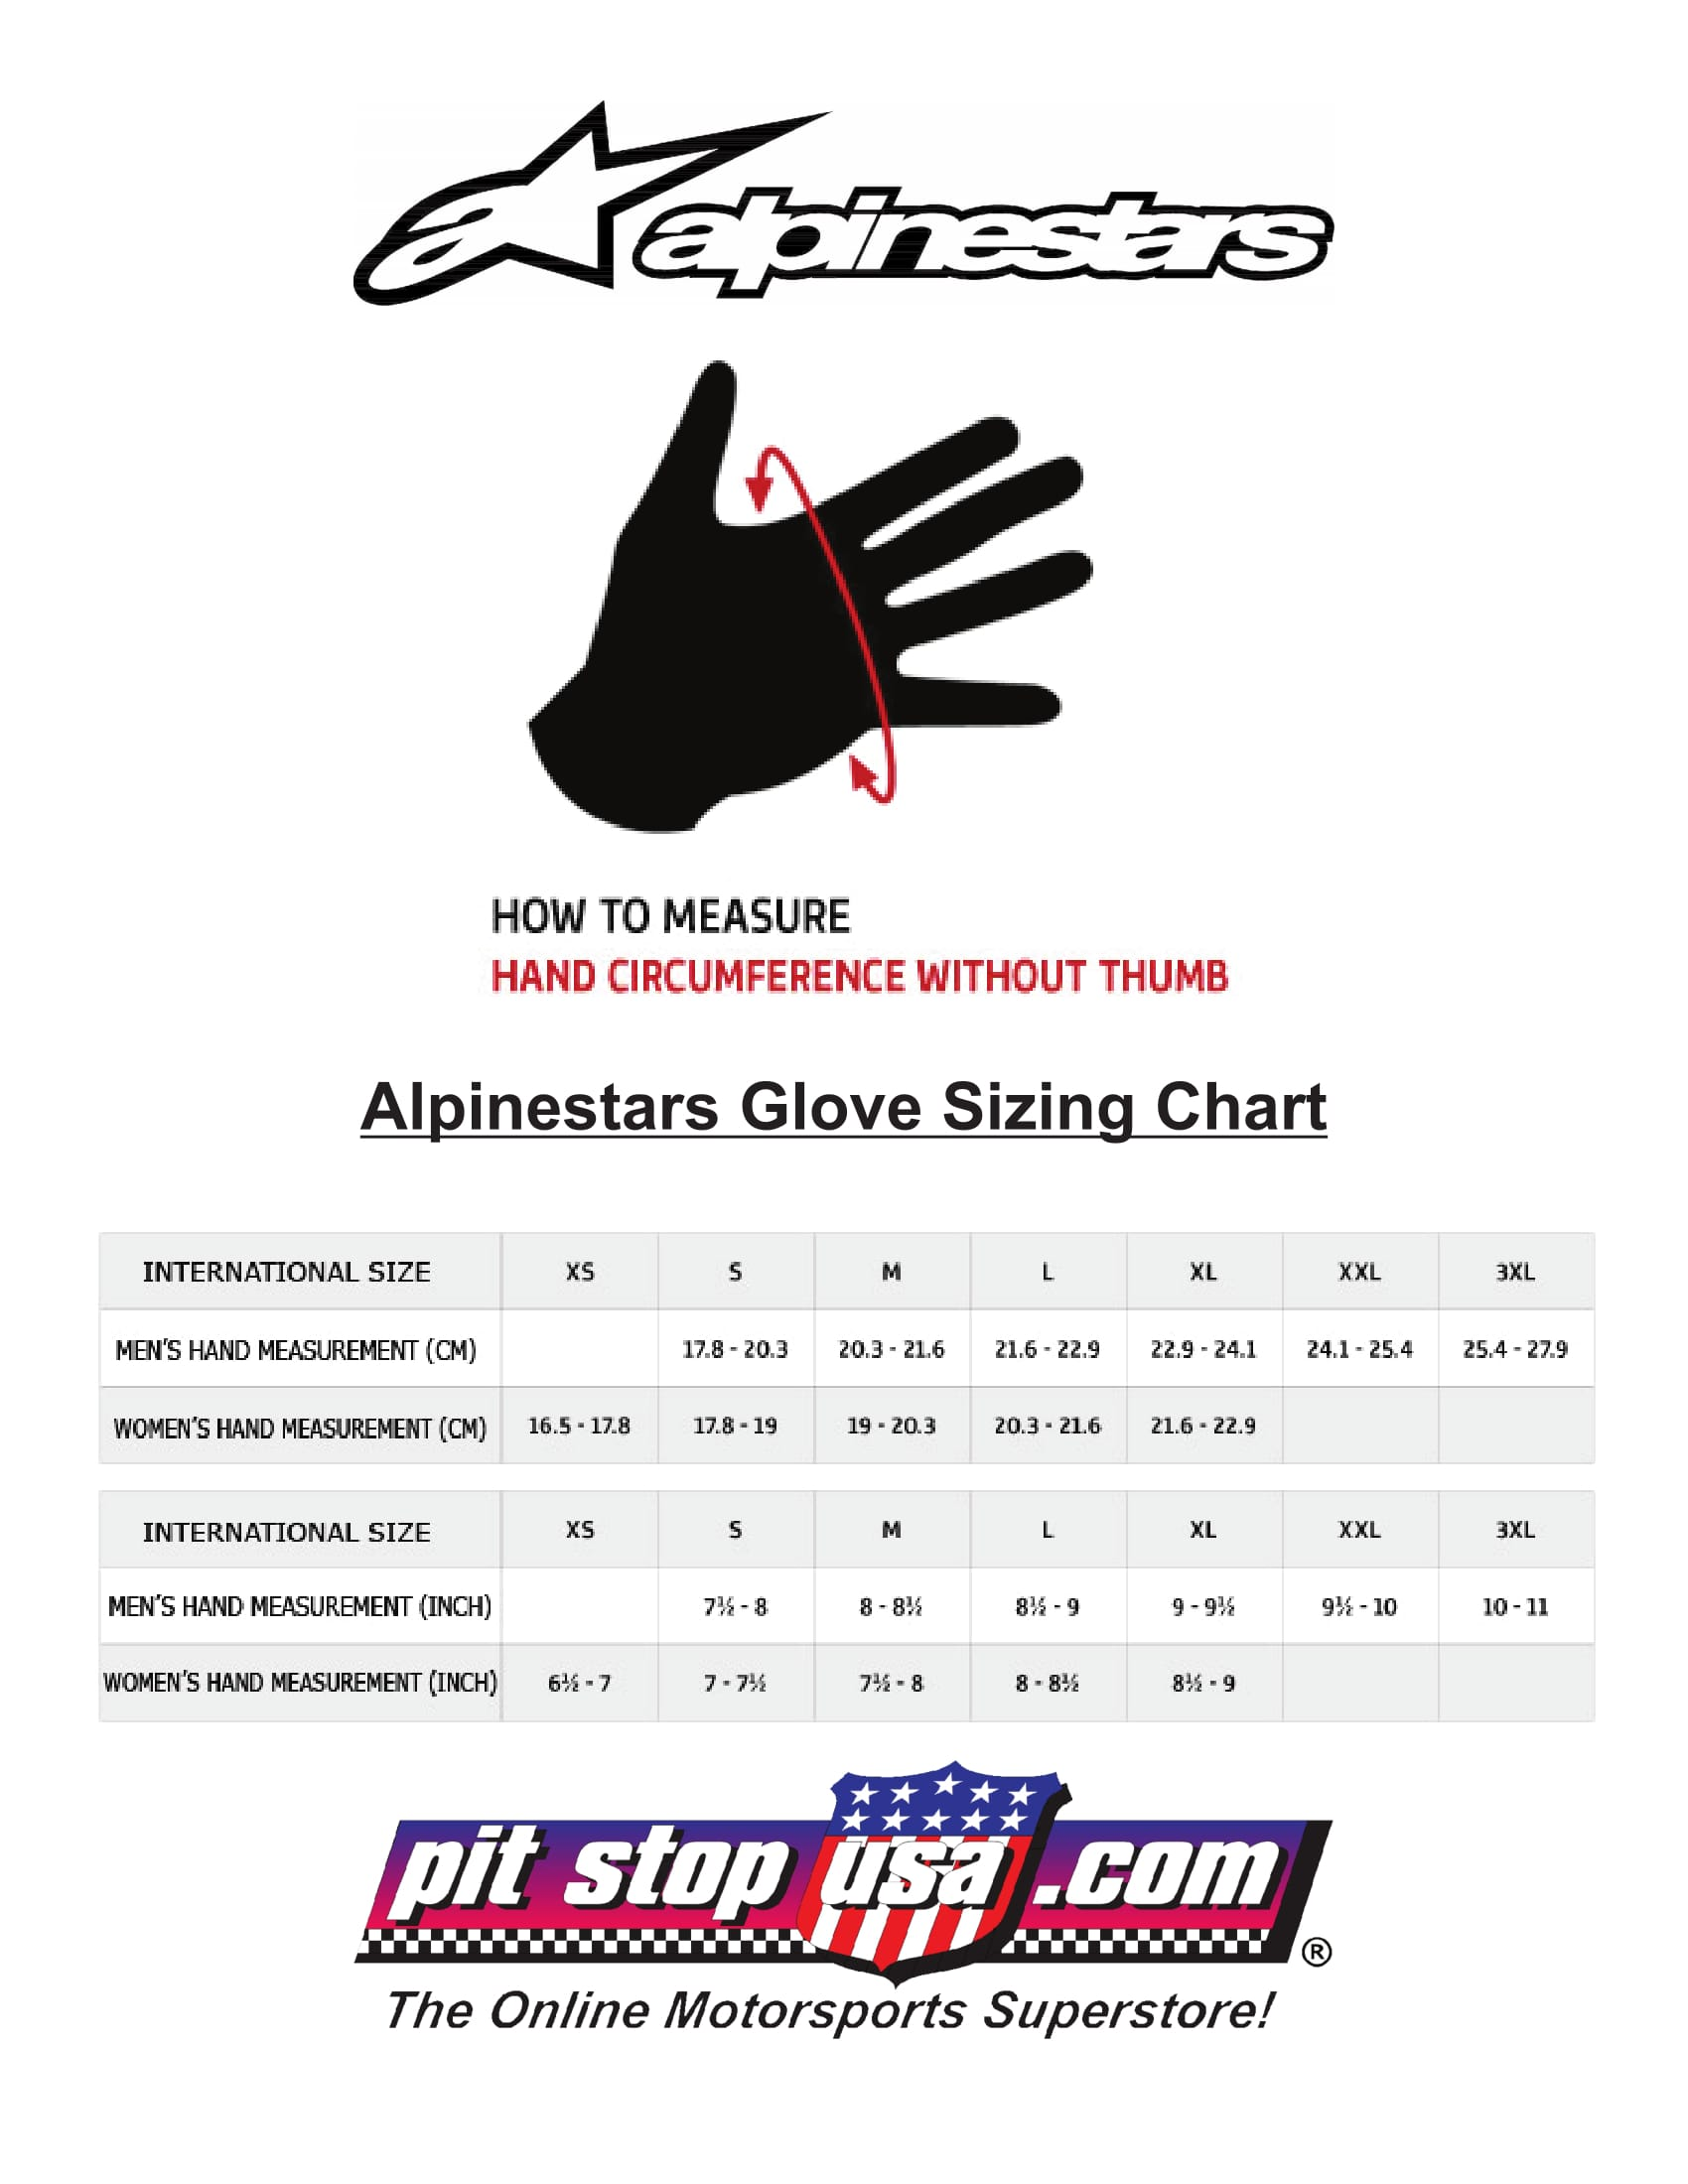 Alpinestars Auto Racing Glove Sizing Chart